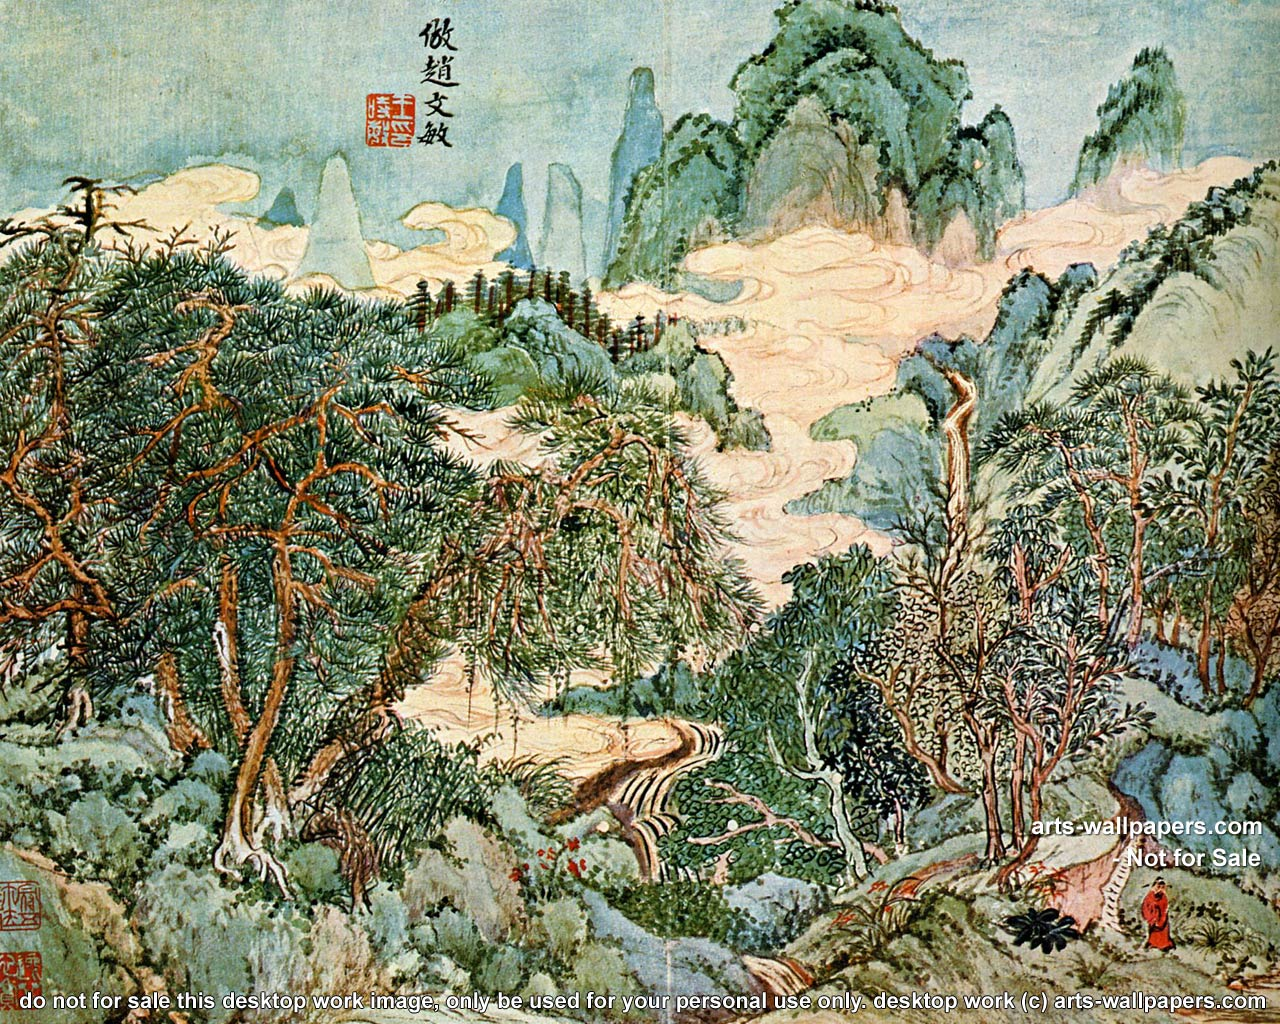 chinese art wallpapers all desktop works by arts wallpapers com 1280x1024